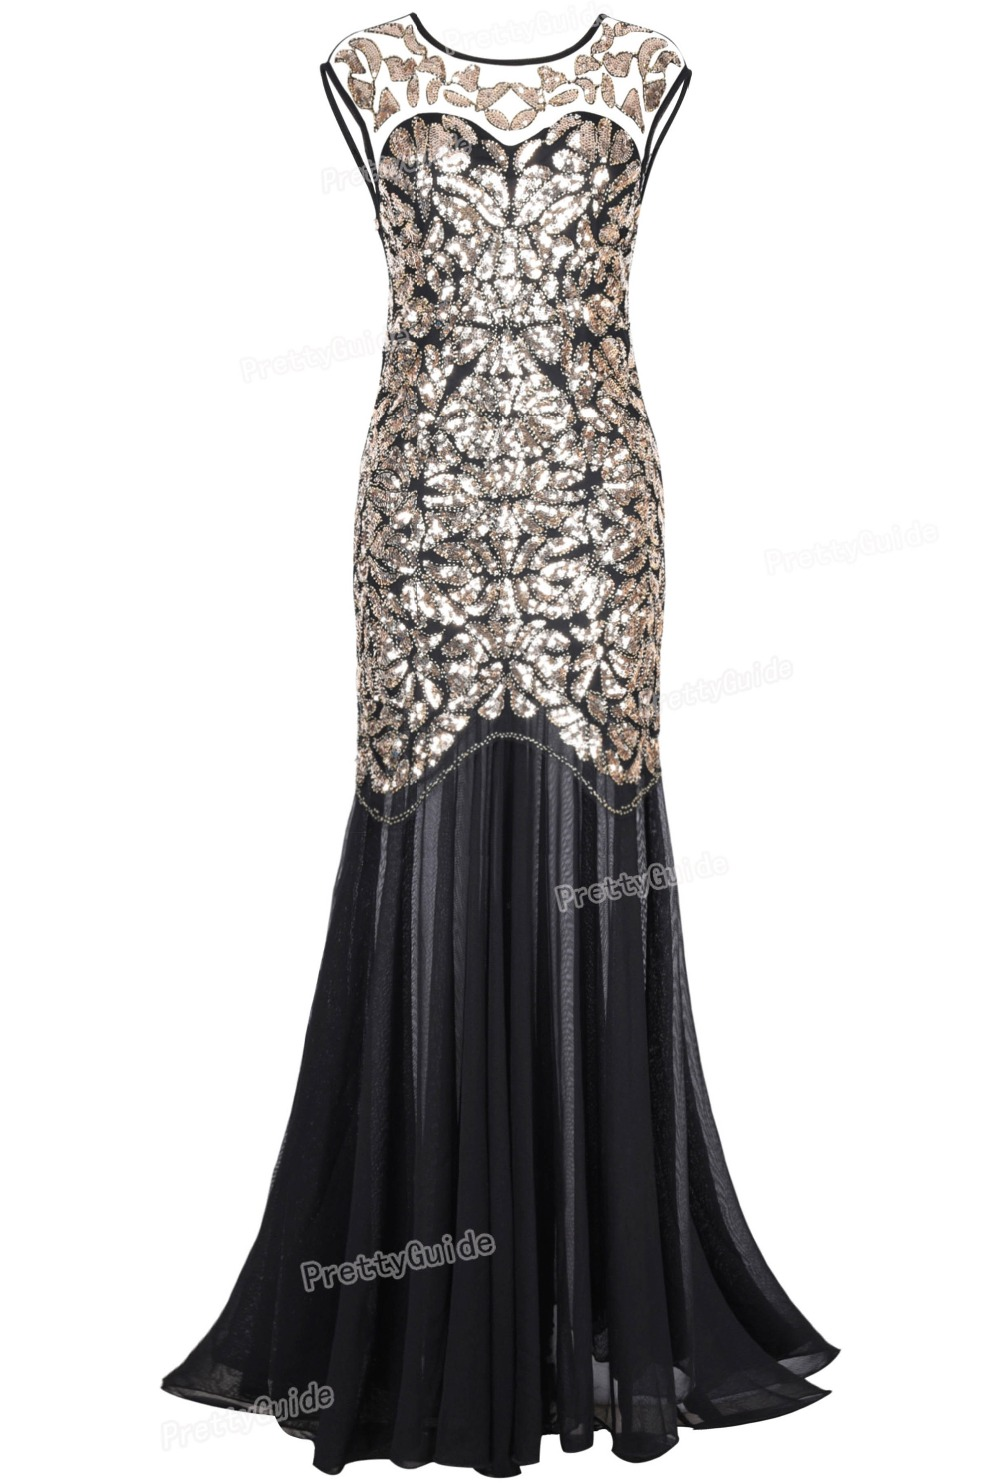 PrettyGuide Women 's 1920s Black Sequin Gatsby Floor Length Evening Party Dress Trumpet Maxi Long  Dress